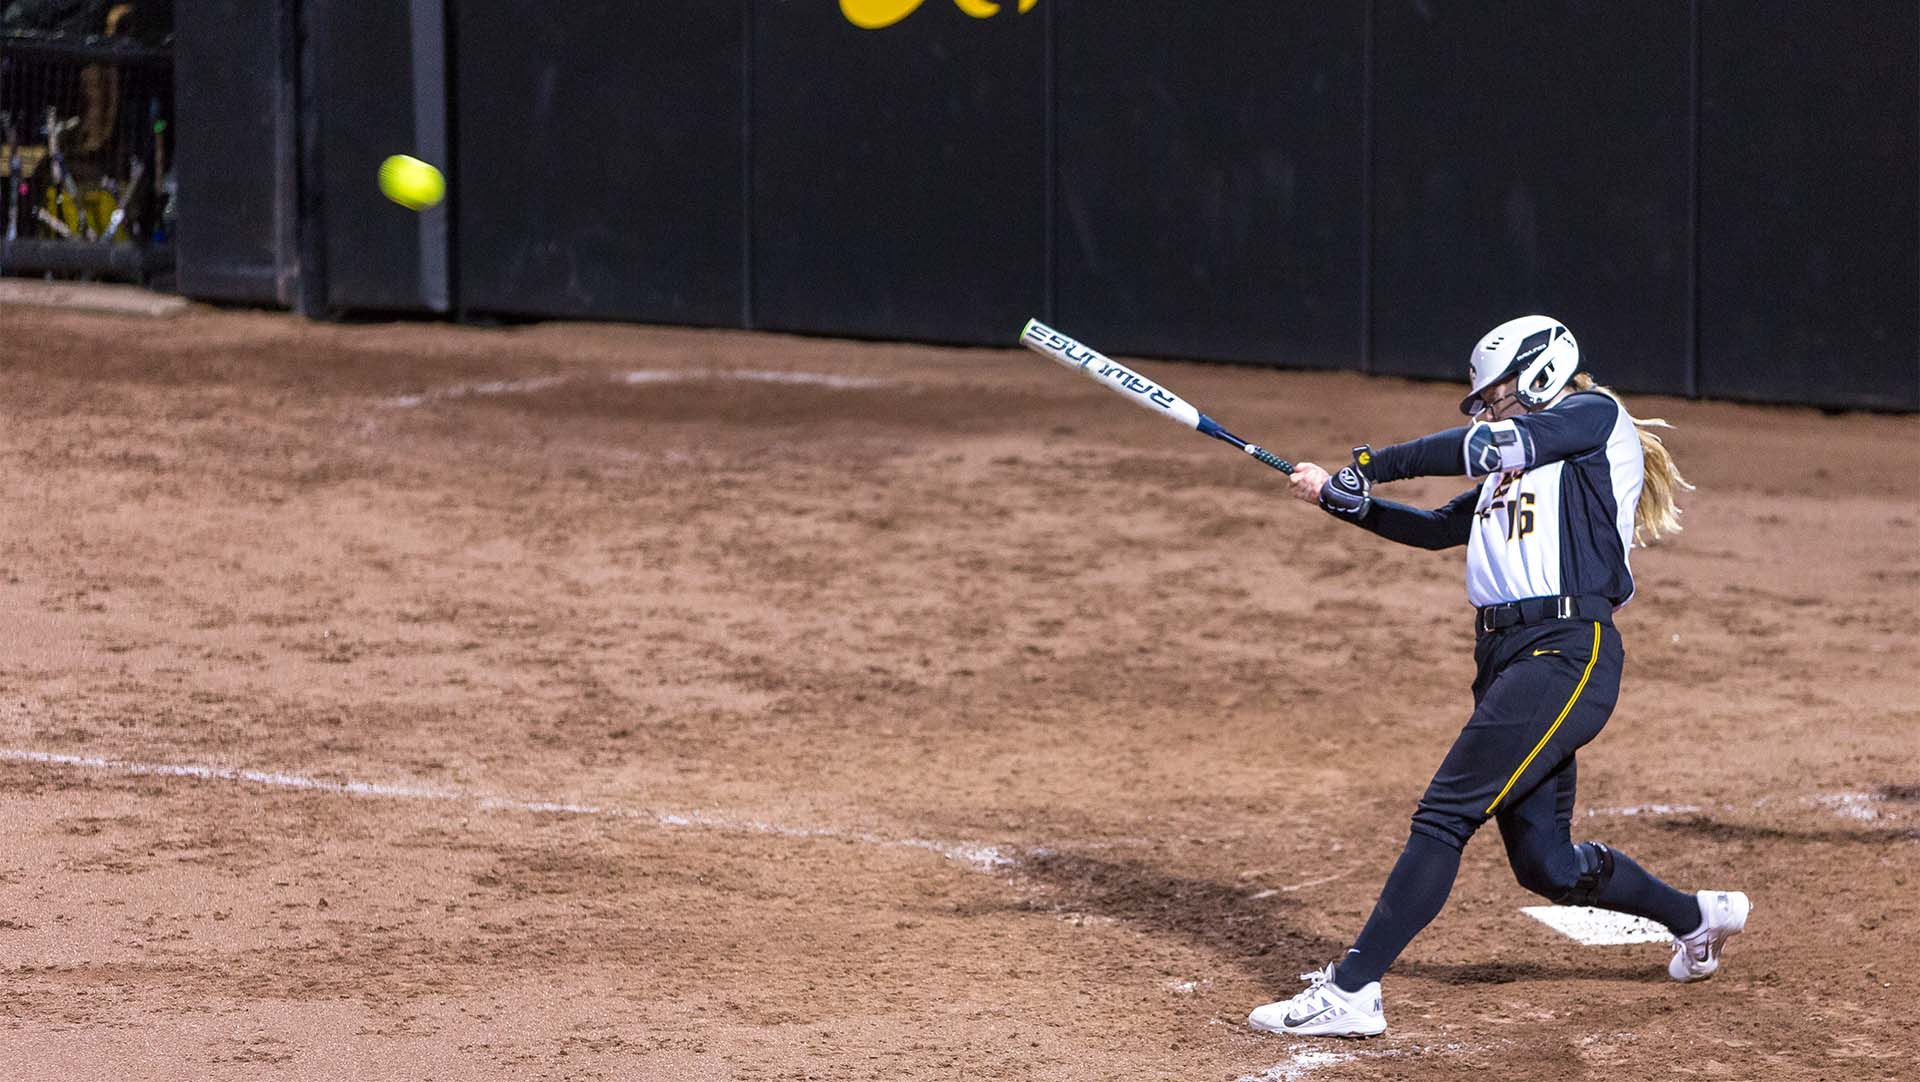 University of Iowa softball player Brooke Rozier connects for a two out double in the bottom of the seventh inning during a game against Western Illinois University on Tuesday, Apr. 17, 2018. The Hawkeyes would score in the inning but the Fighting Leathernecks defeated the Hawkeyes 2-1. (David Harmantas/The Daily Iowan)